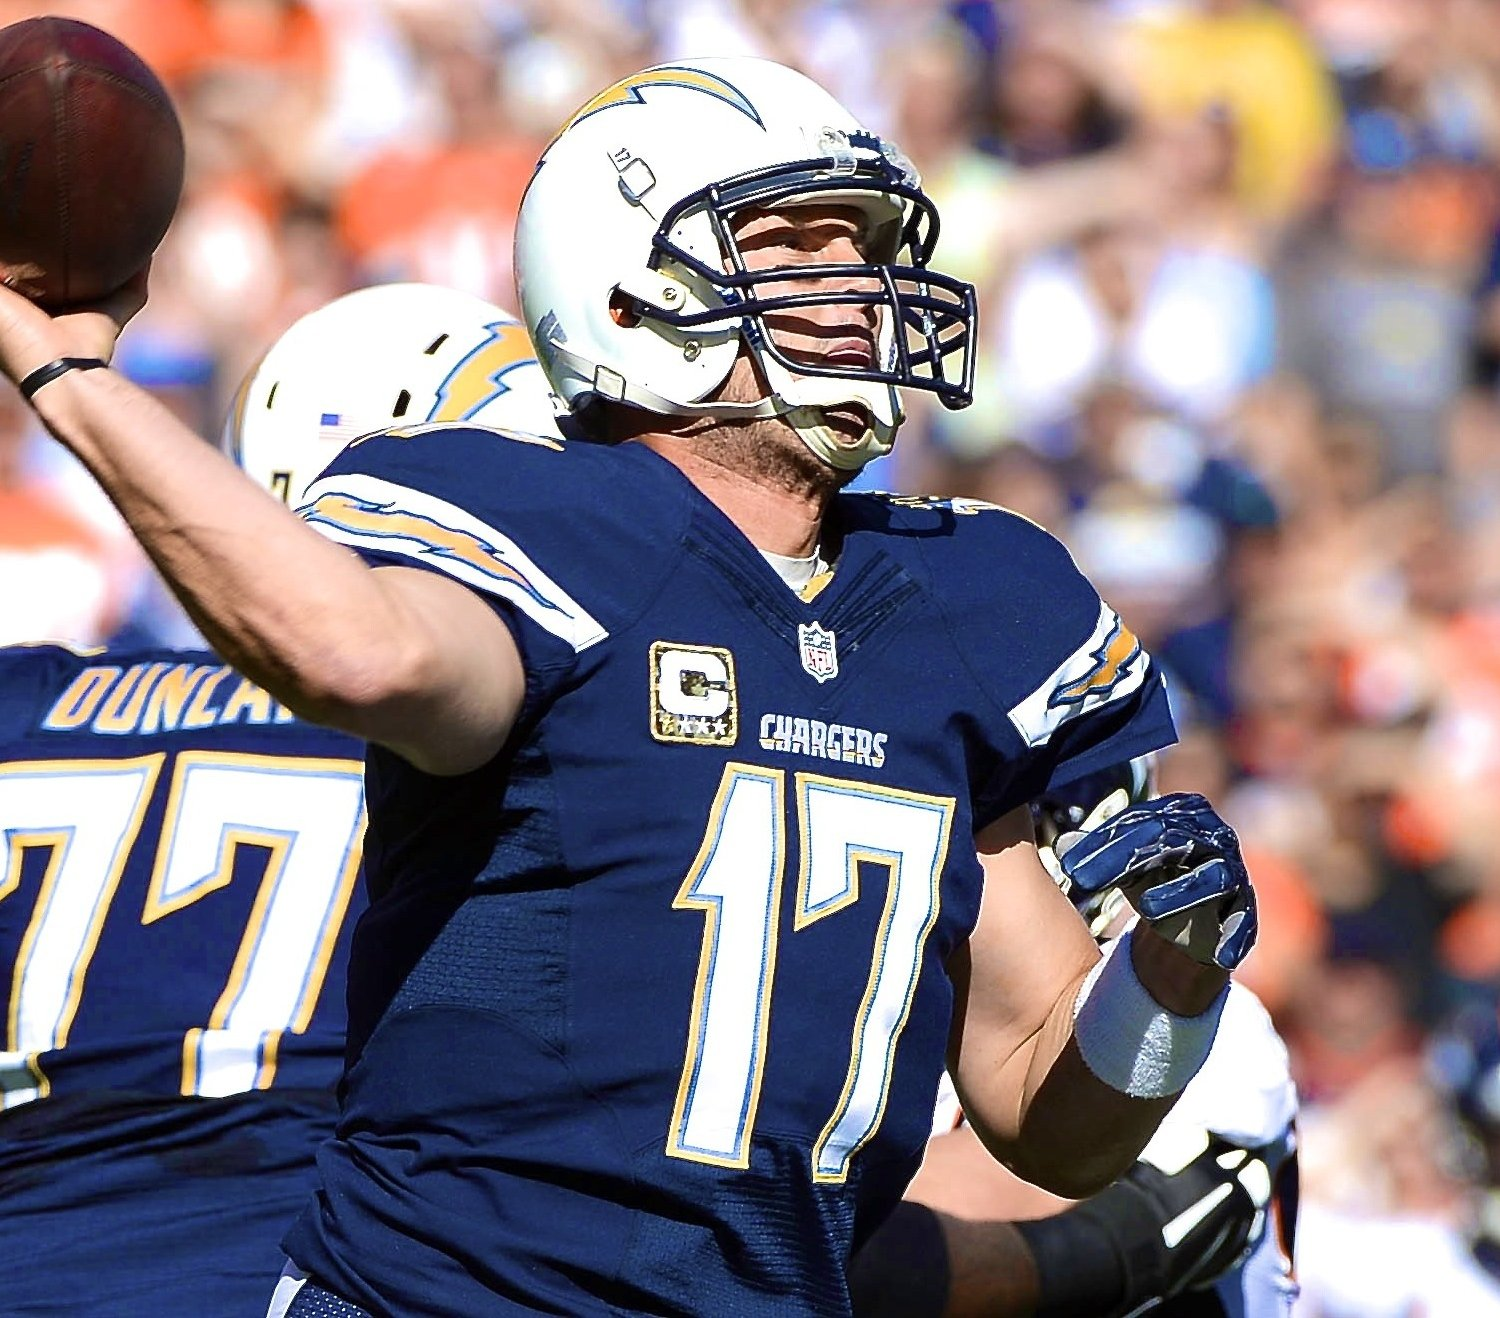 San Diego Chargers Football Scores: New York Giants Vs. San Diego Chargers: Live Score